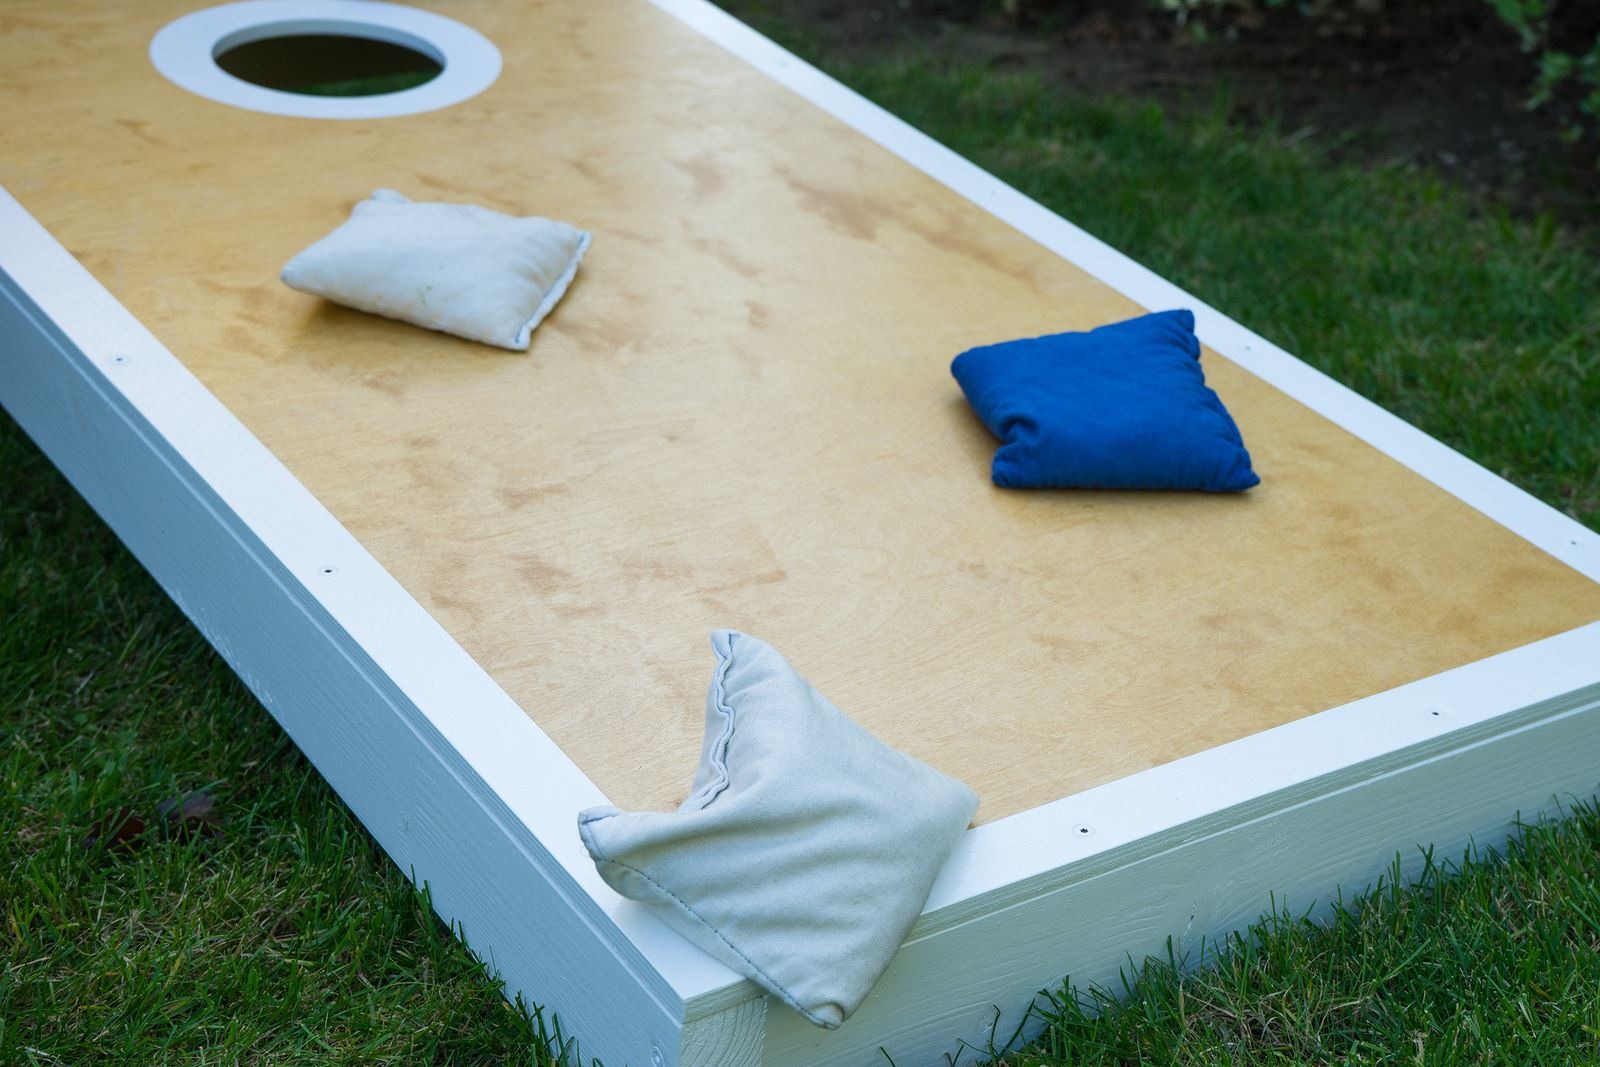 Bean Bag toss board